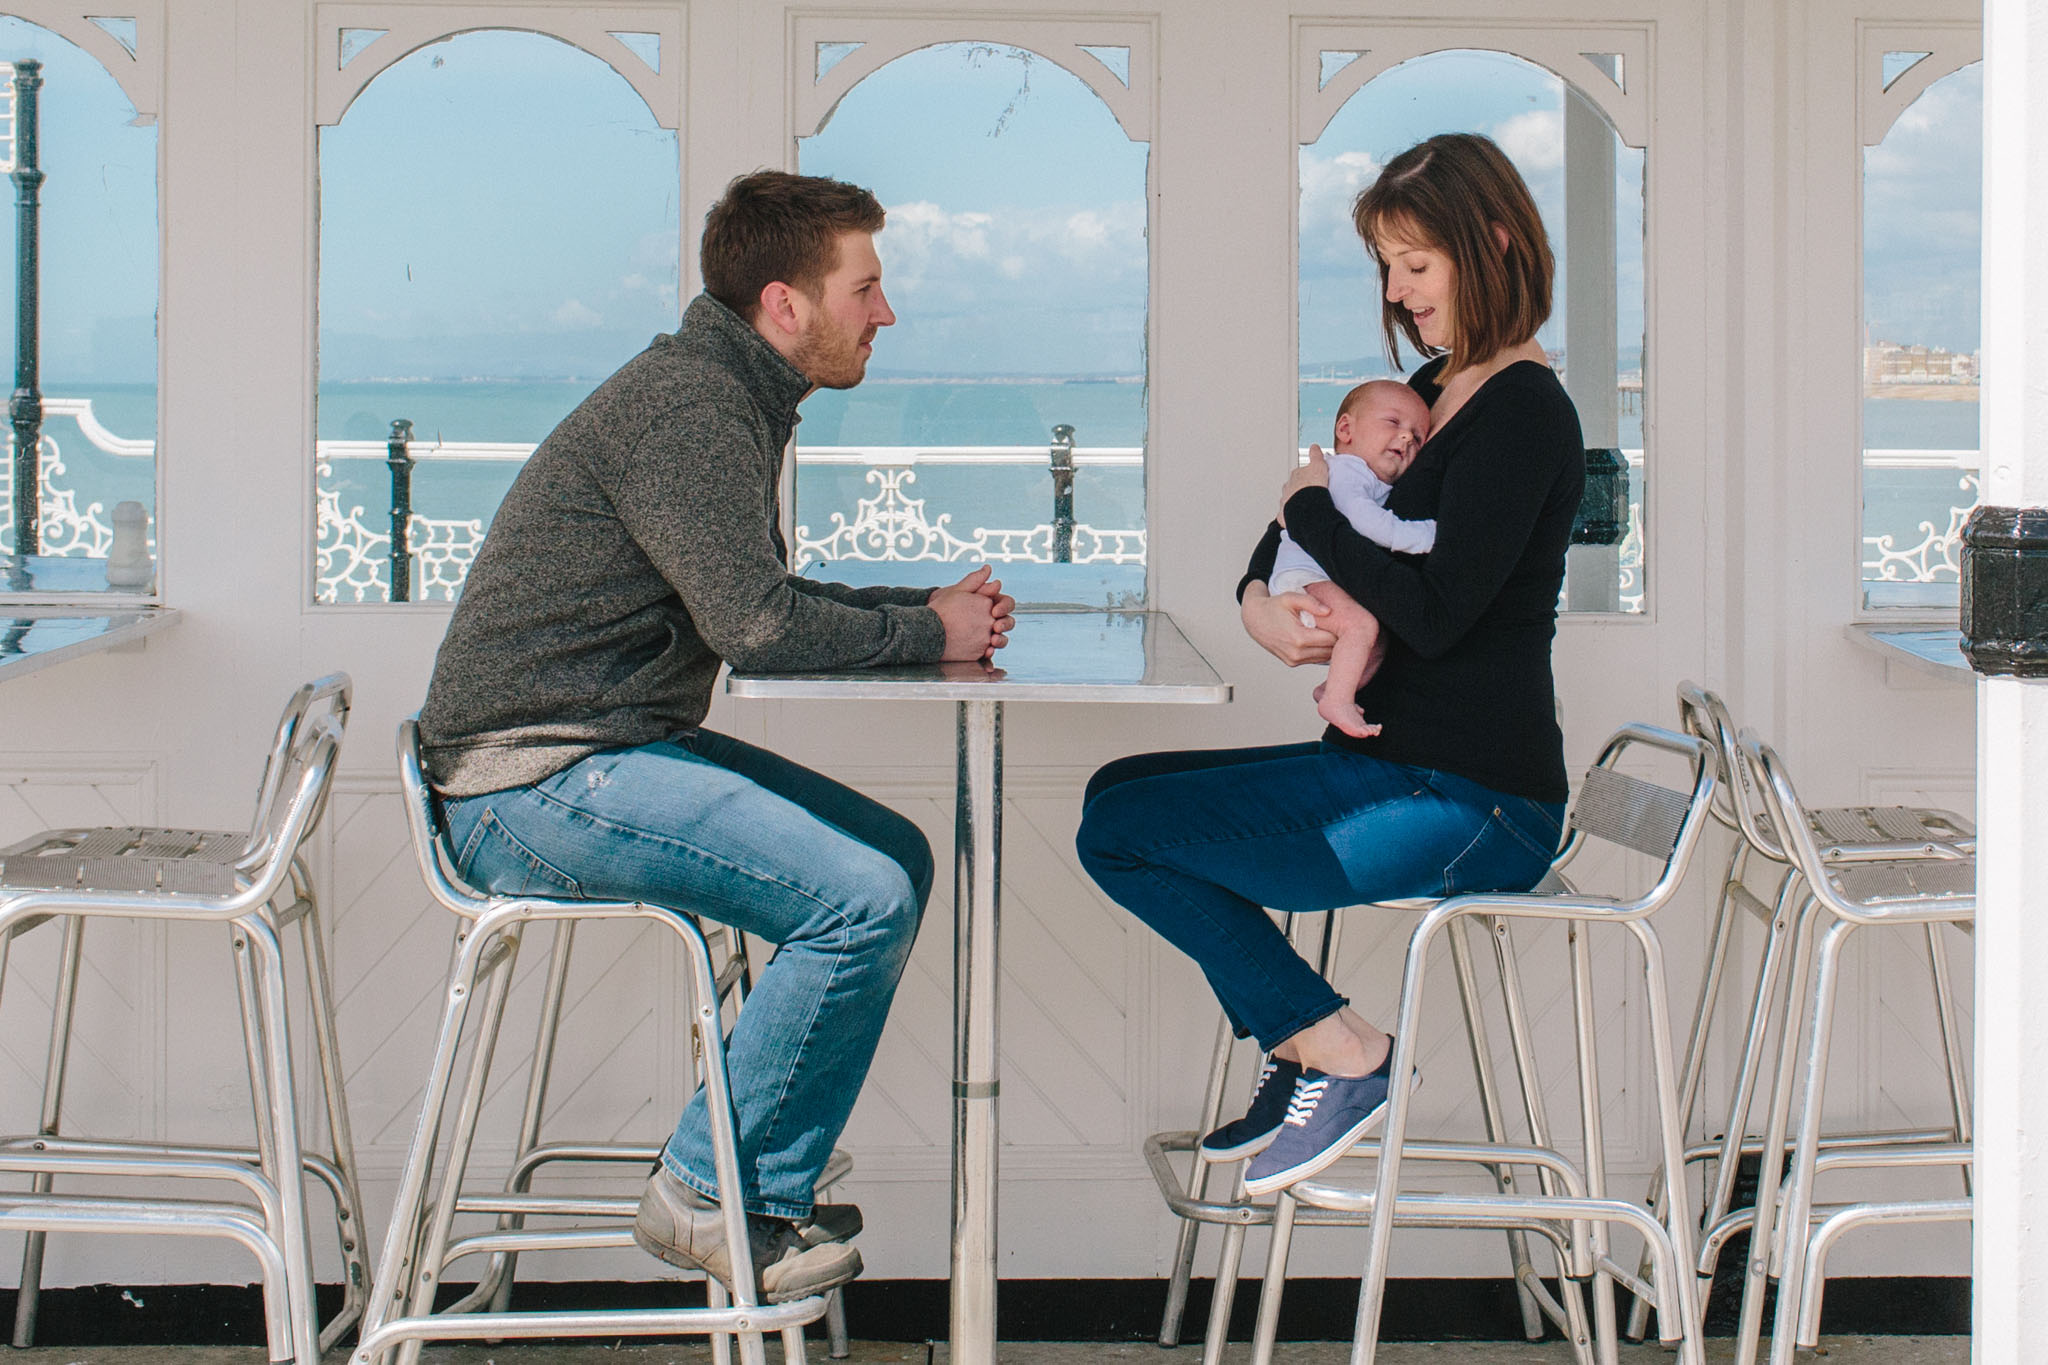 newborn photography on brighton pier